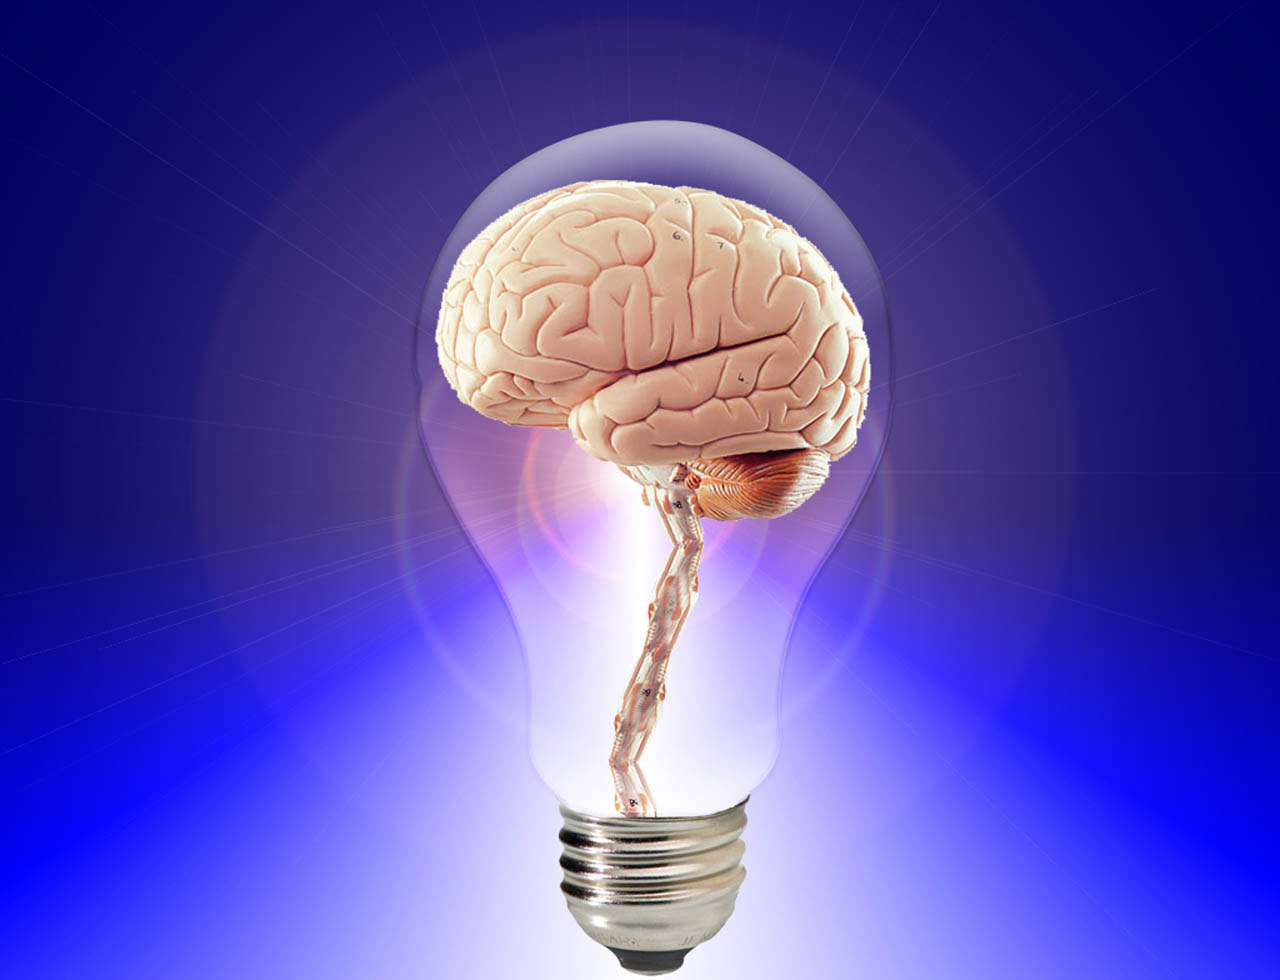 brain-light-bulb